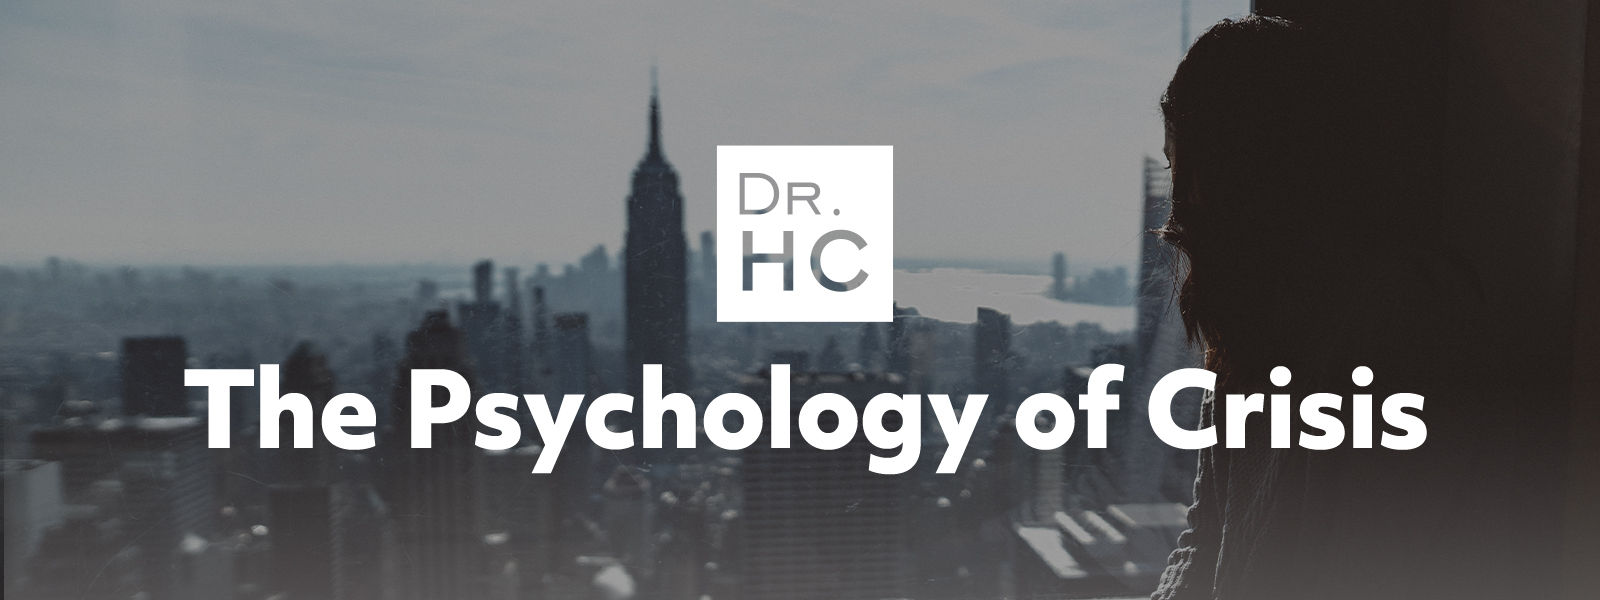 The Psychology of Crisis